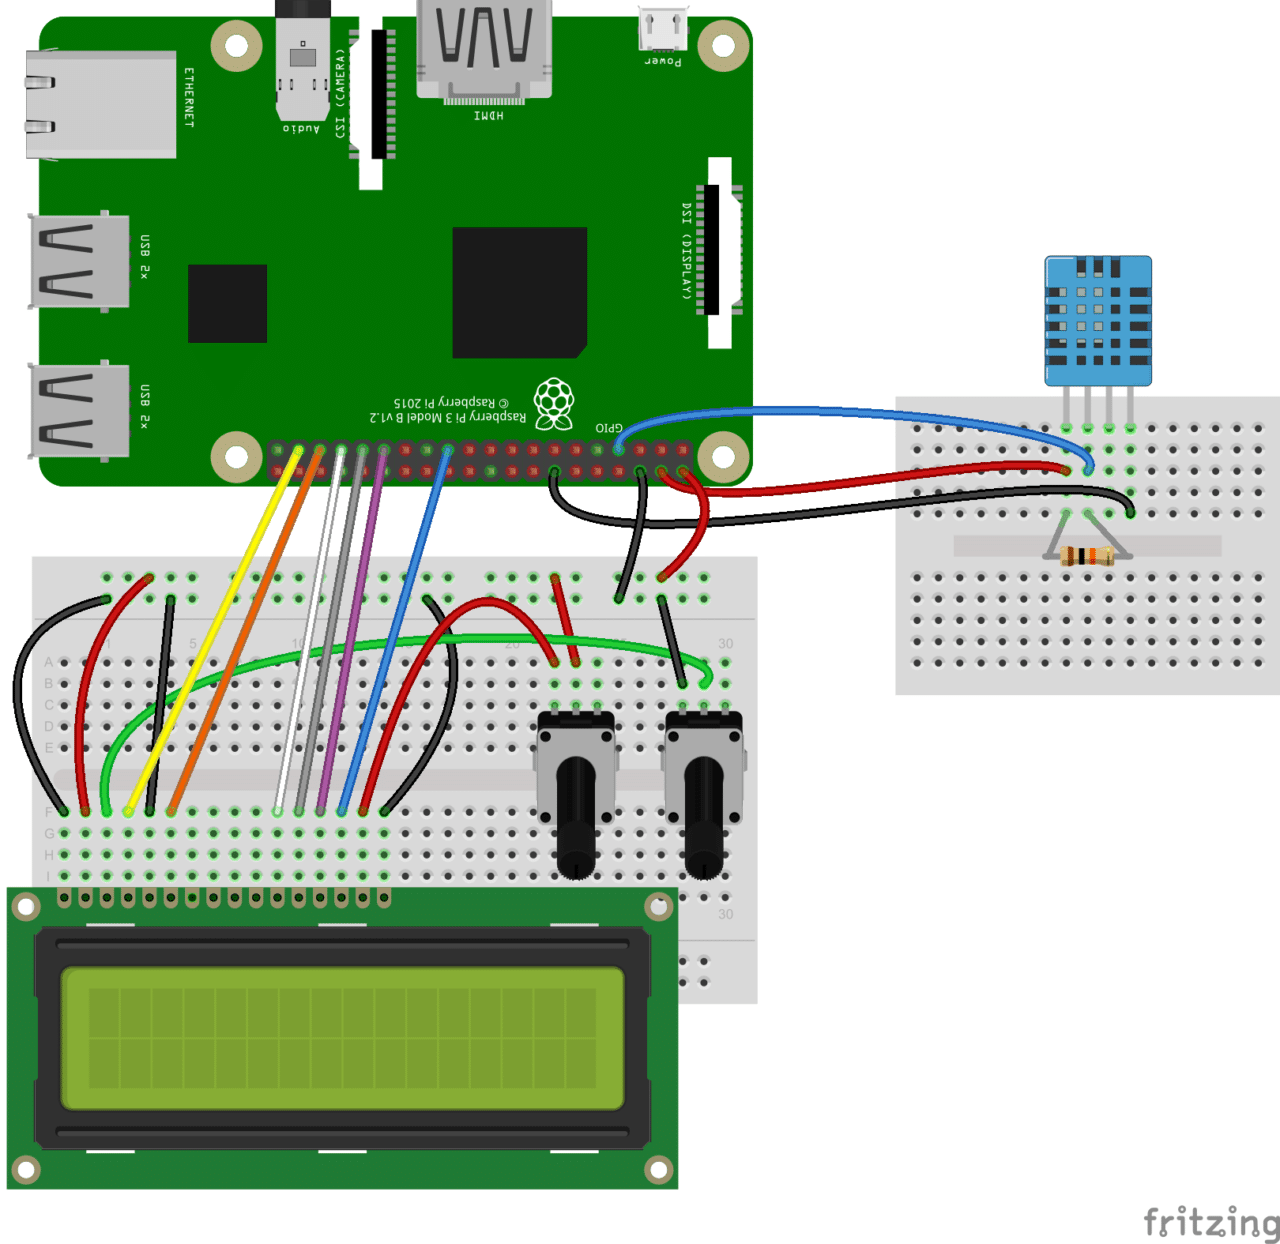 How to Setup the DHT11 on the Raspberry Pi Four pin DHT11 LCD Wiring Diagram how to set up the dht11 humidity sensor on the raspberry pi raspberry pi wiring diagram at arjmand.co